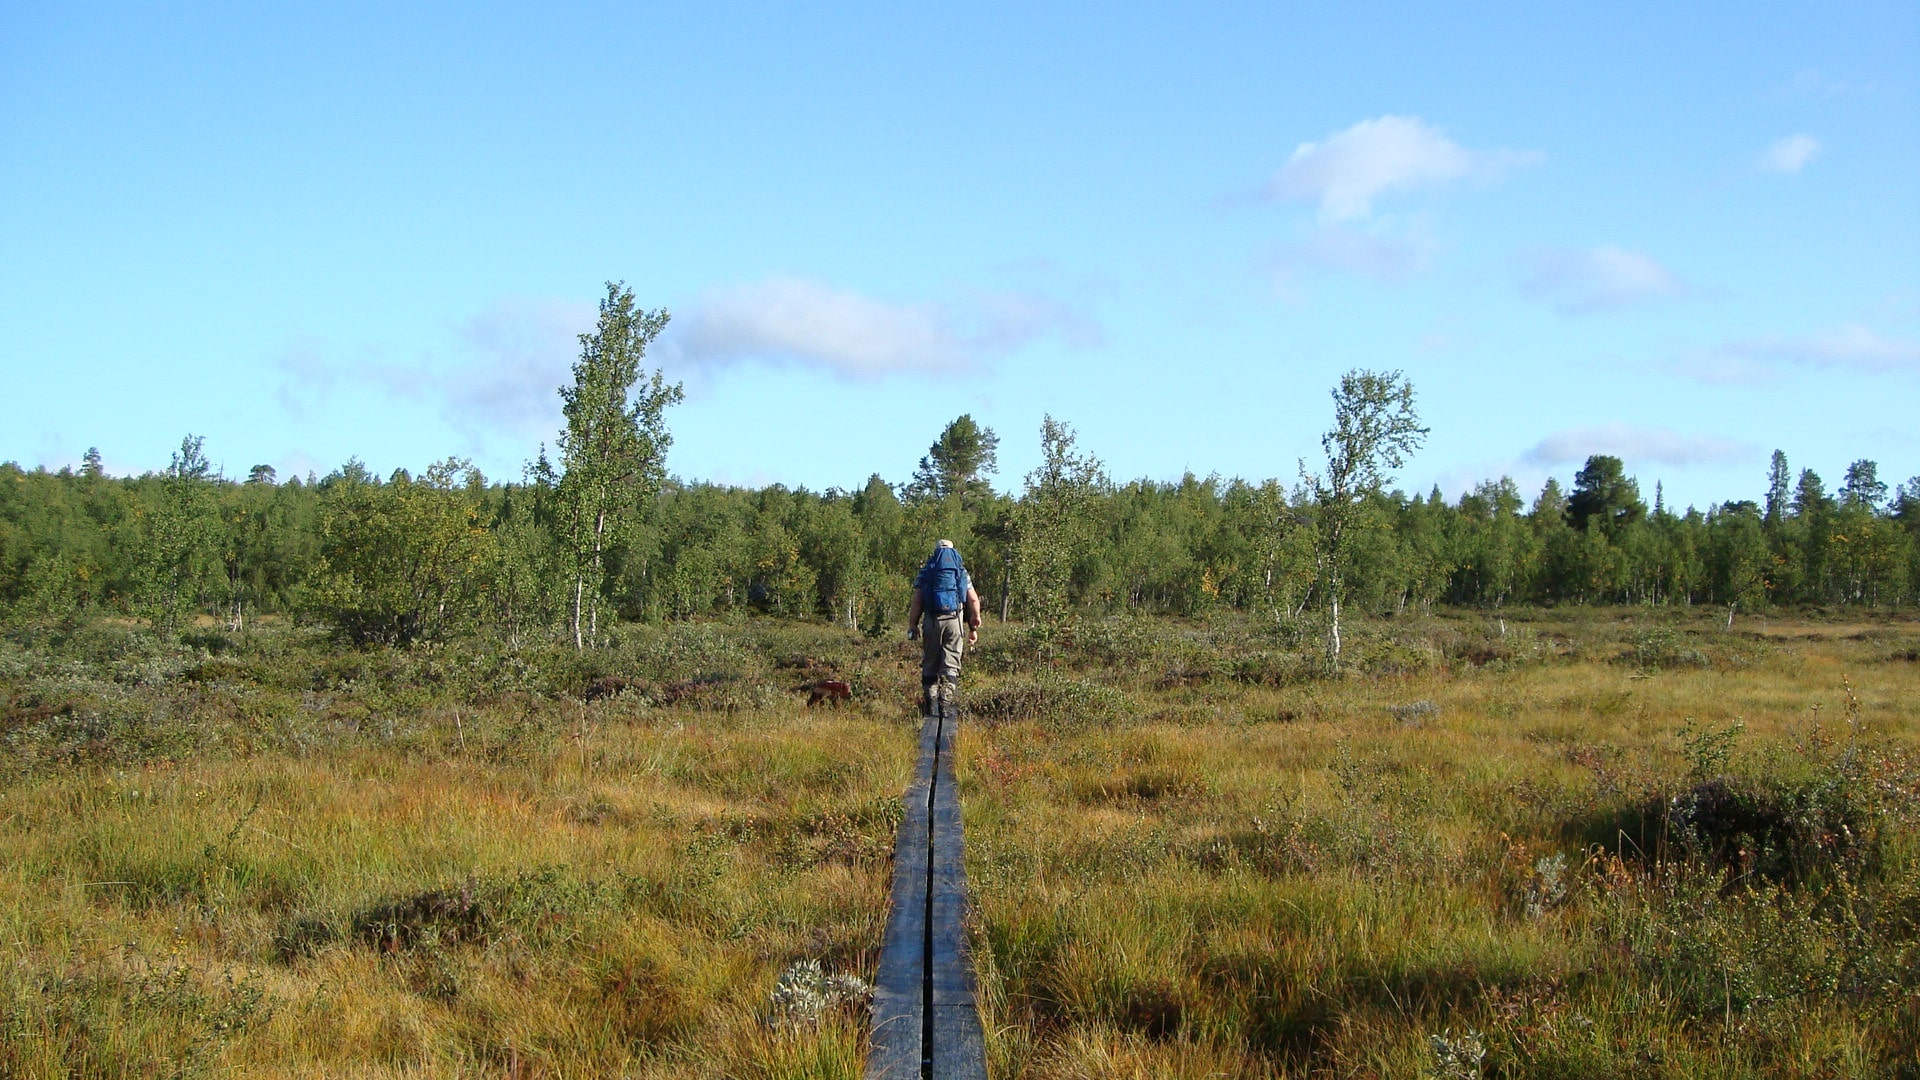 The Kungsleden hiking trail was founded at the end of the 19th century by the